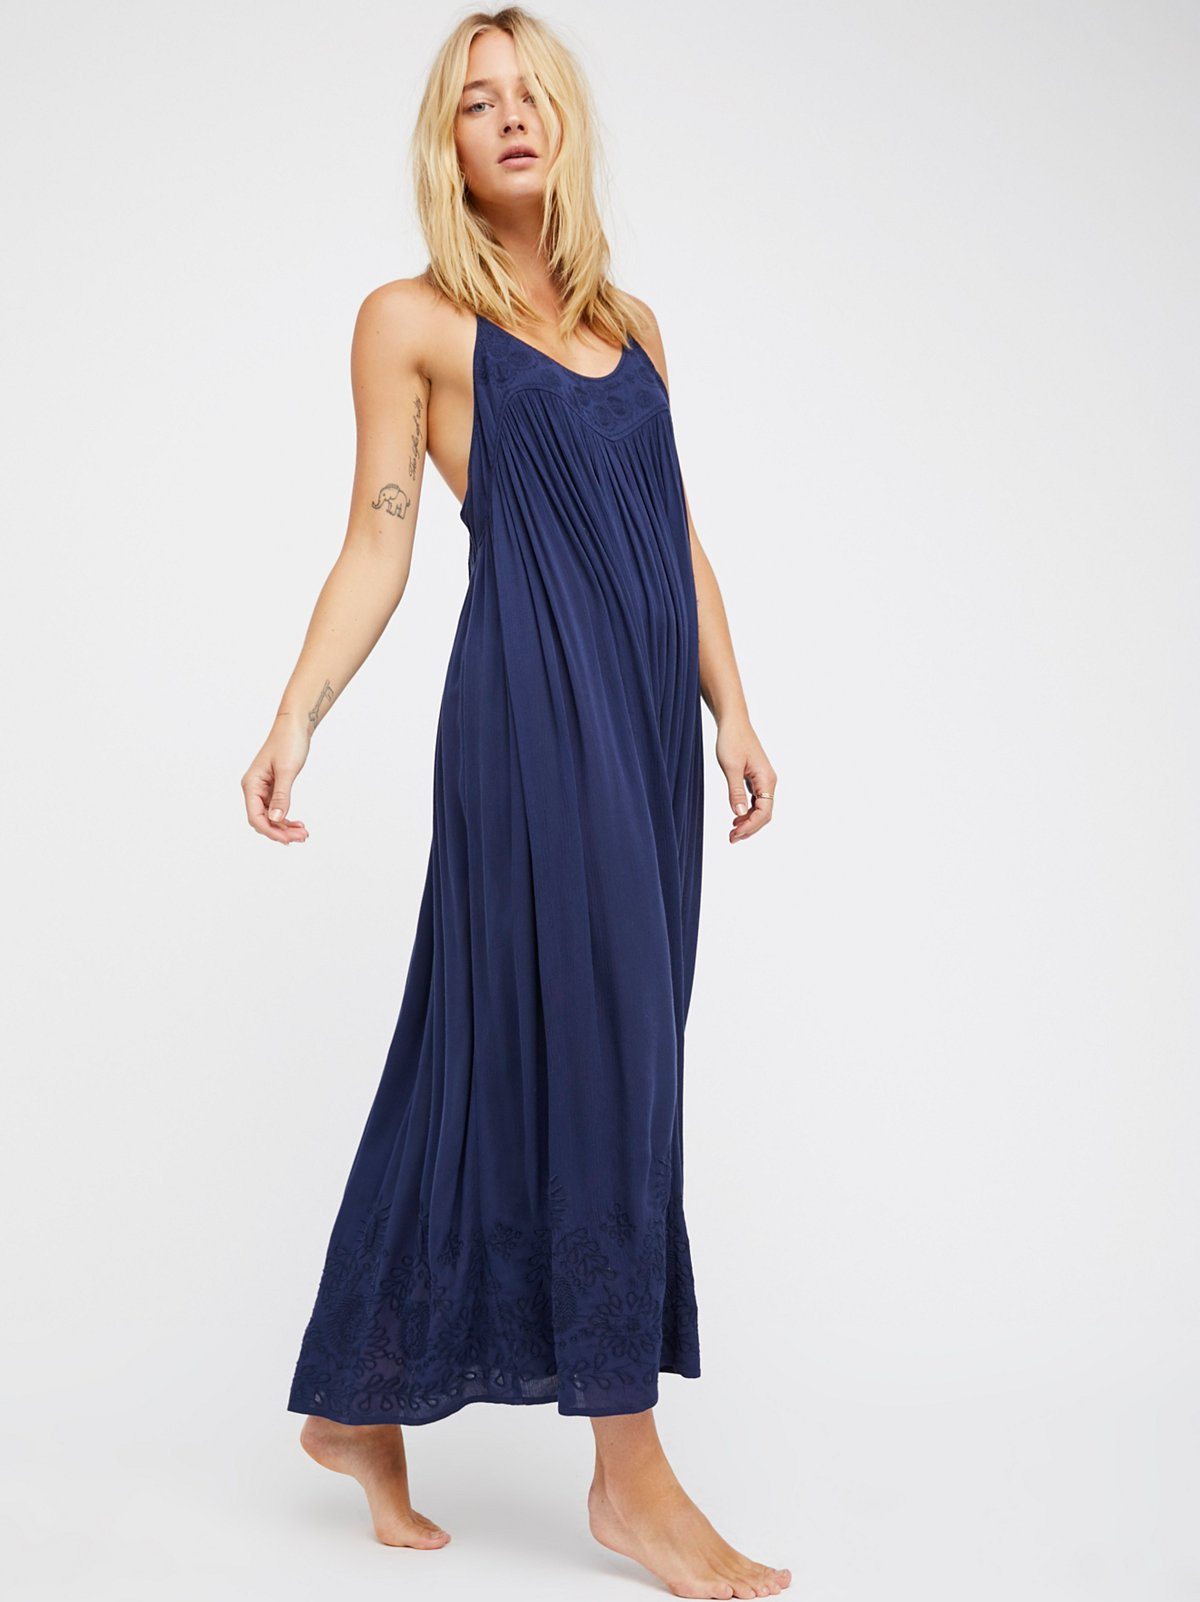 Embroidered Elaine Maxi Slip